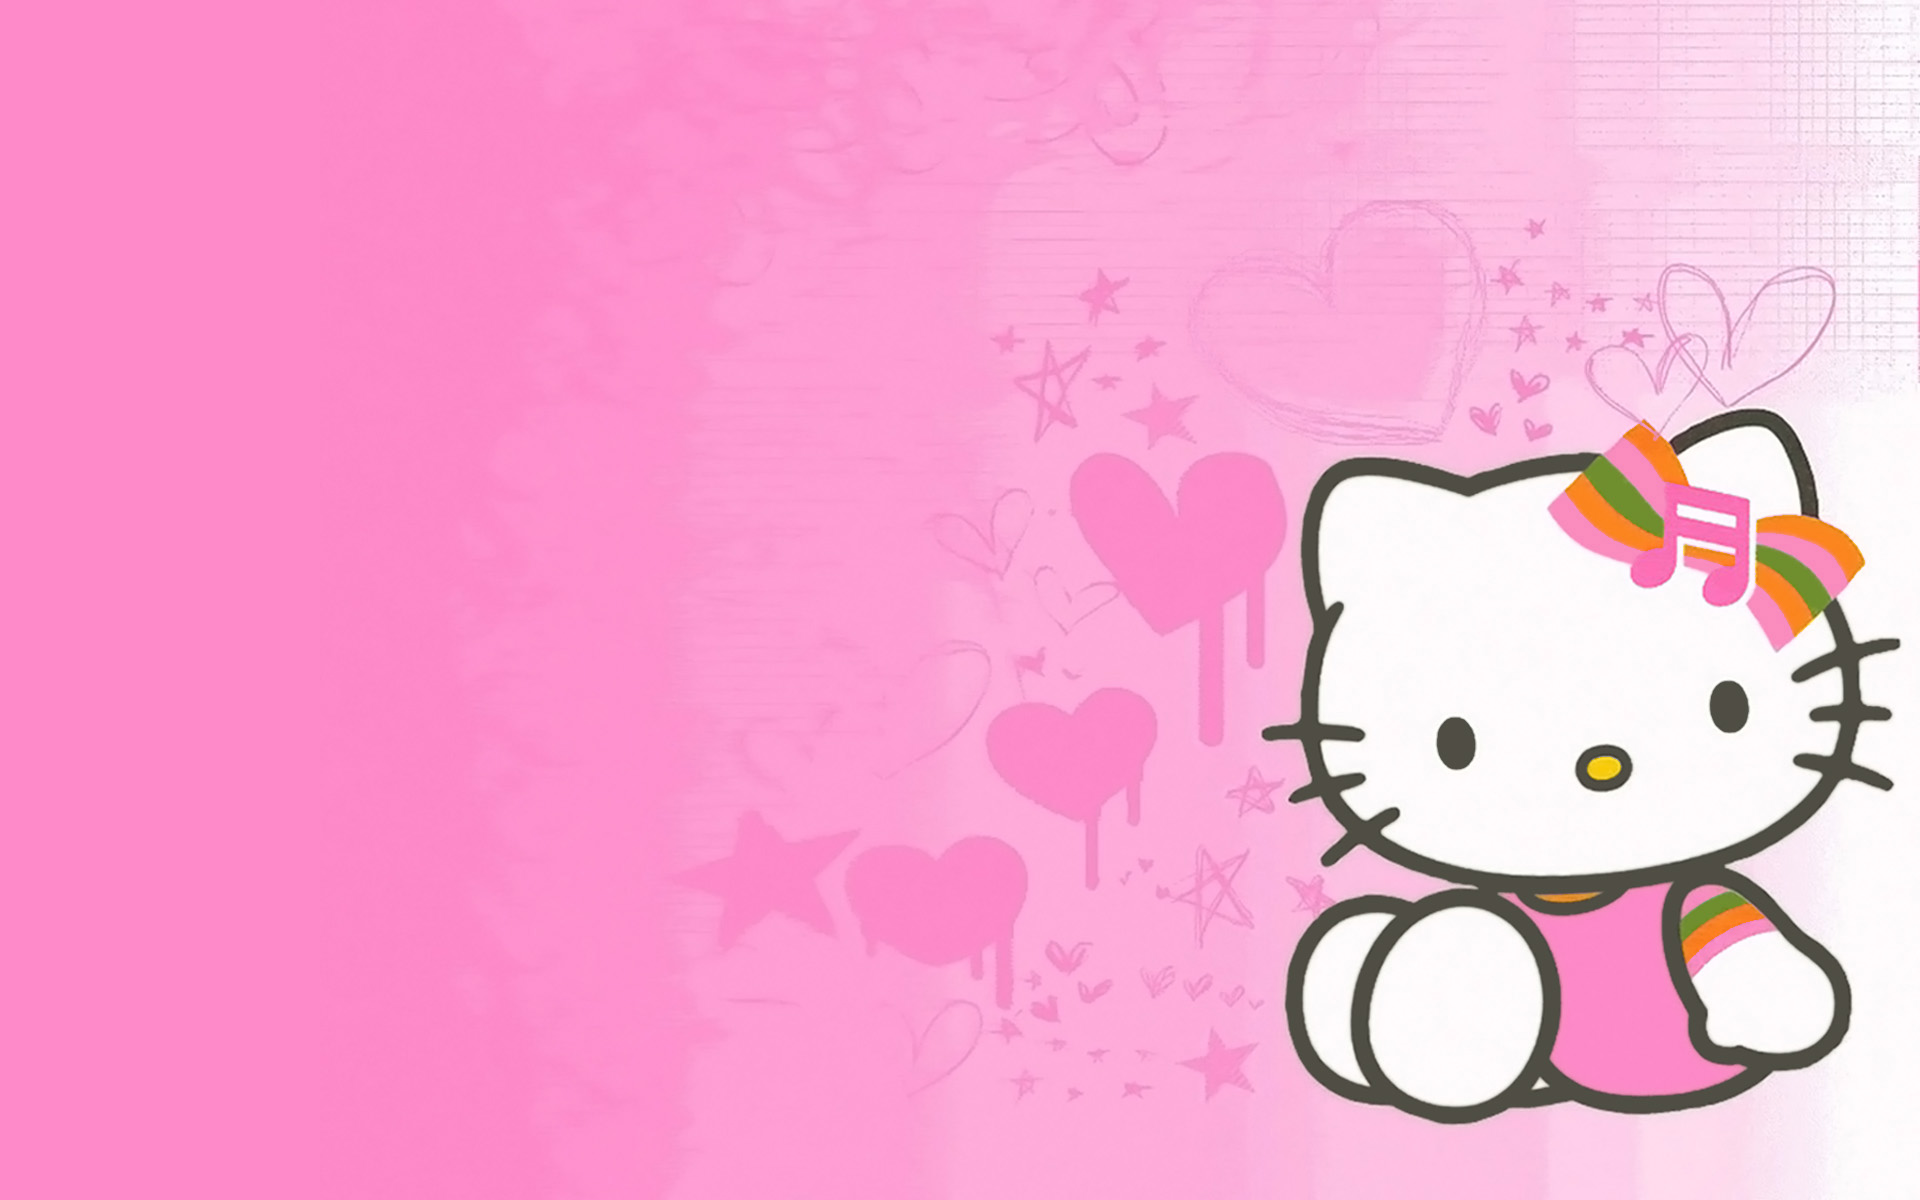 Pink Hello Kitty Wallpaper For Android 1920x1200